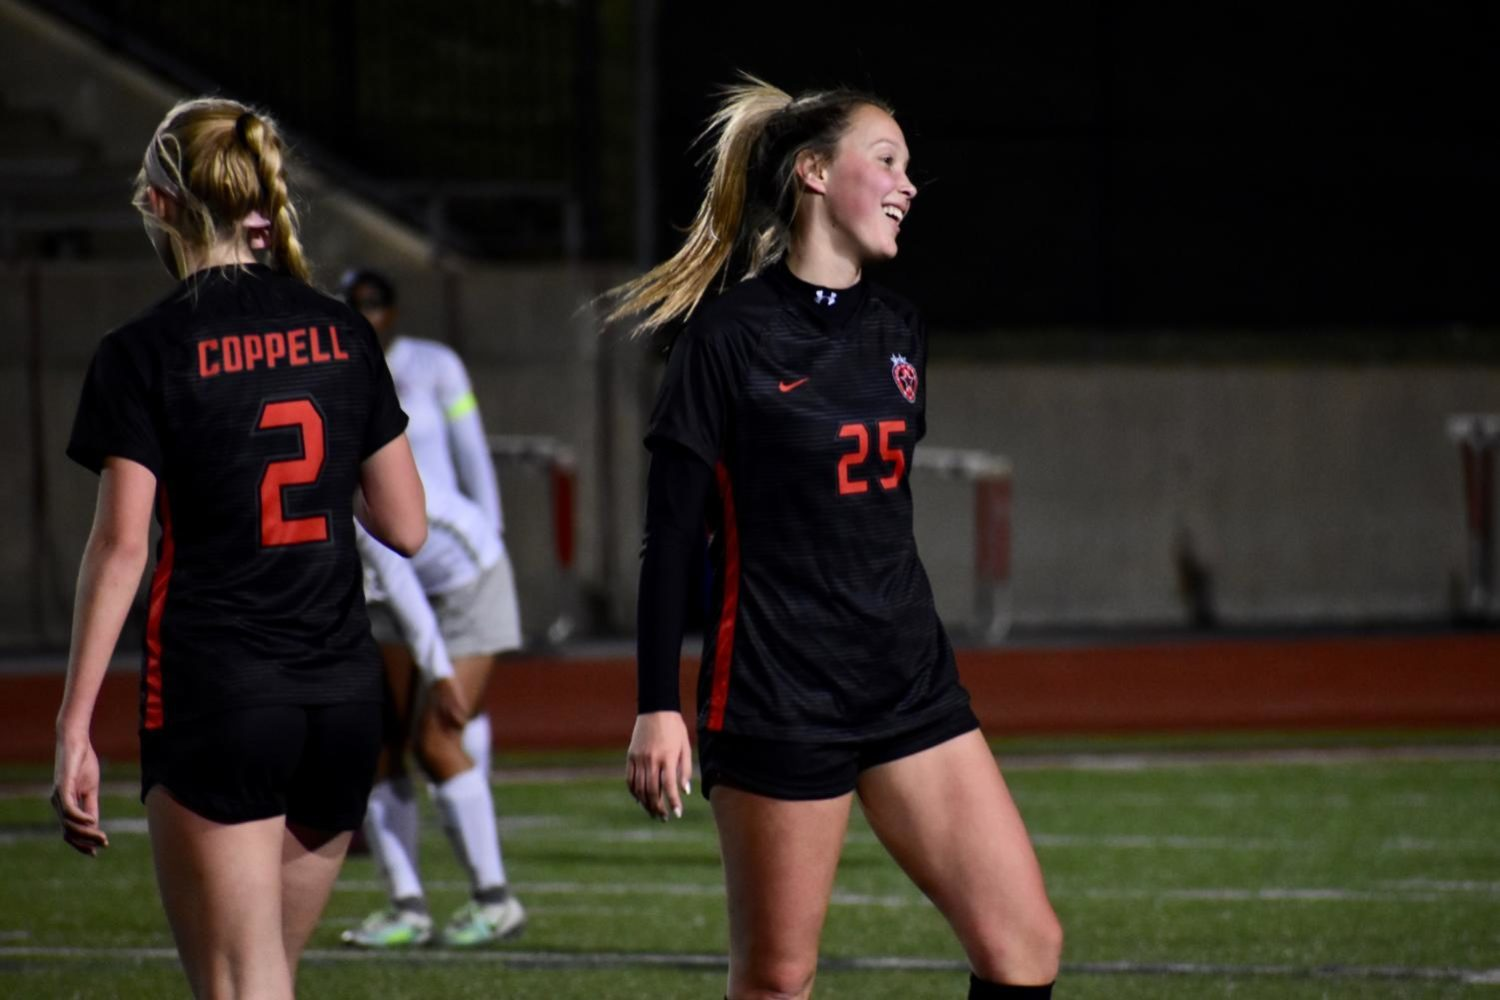 Coppell senior forward/midfielder Micayla Weathers celebrates with teammates after scoring a goal during the game against Lewisville on Jan. 29 at Buddy Echols Field. The Cowgirls won, 5-1, and play Irving tomorrow